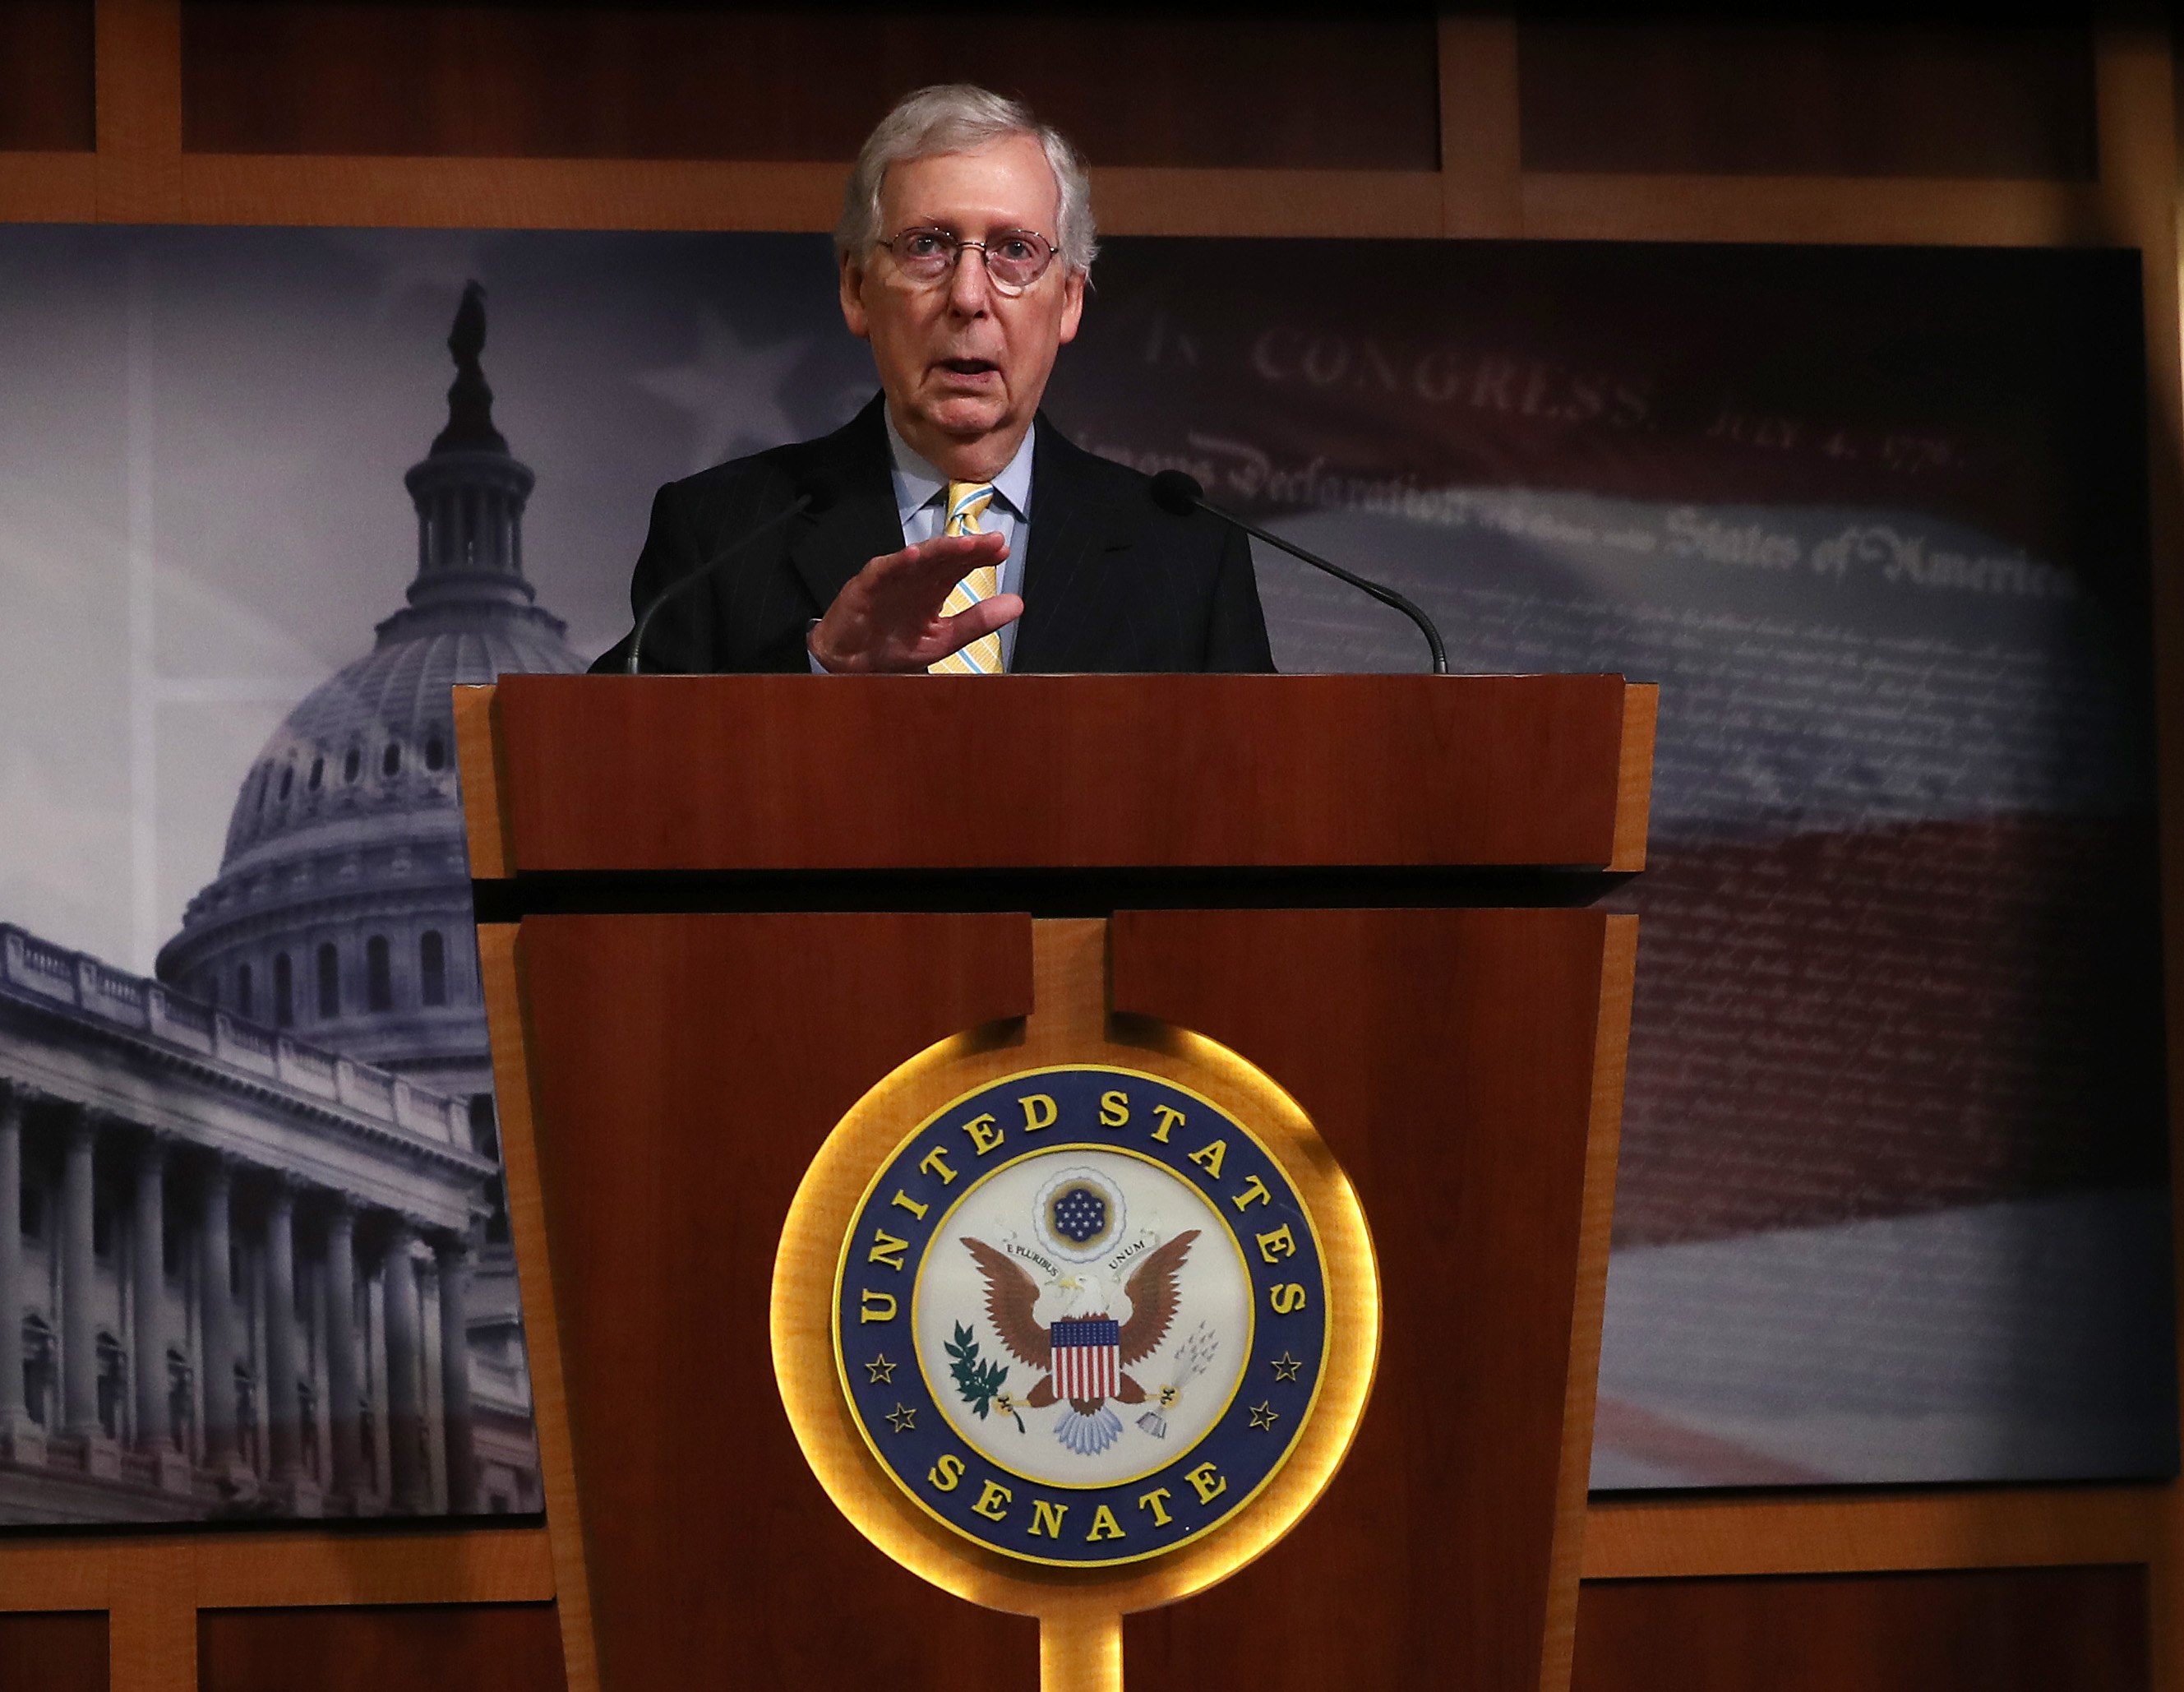 Senate Majority Leader Mitch McConnell speaks to the media during a news conference on Capitol Hill June 27, 2019 in Washington, DC. (Photo by Mark Wilson/Getty Images)